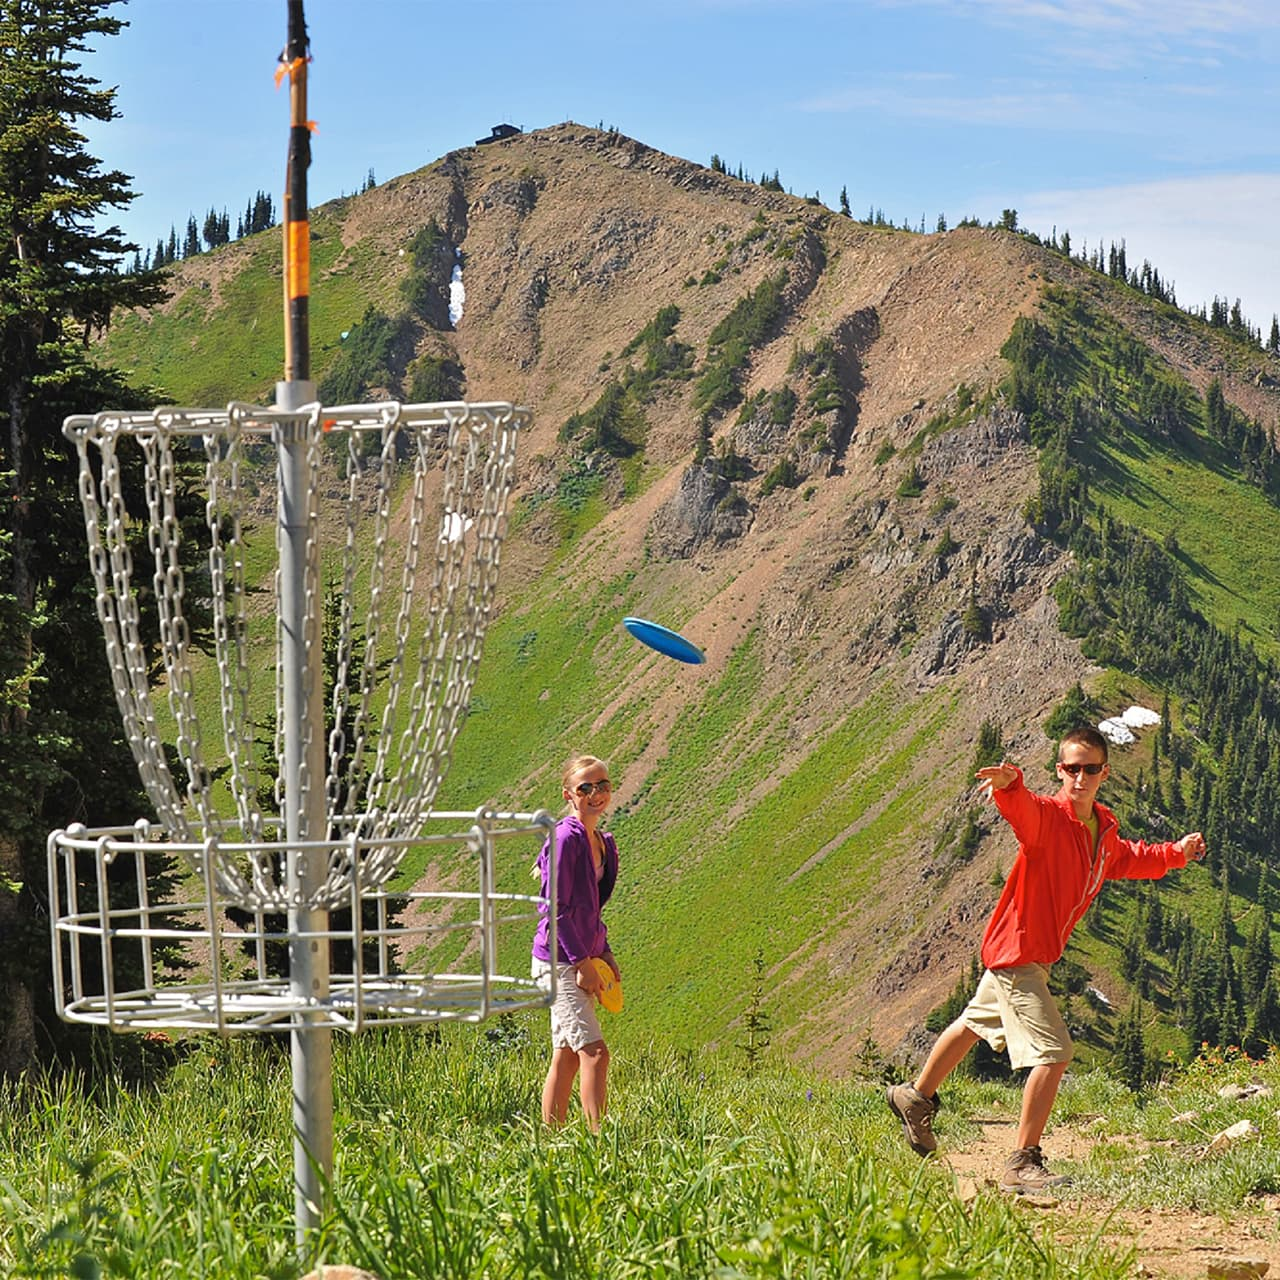 Crystal Mountain disc golf